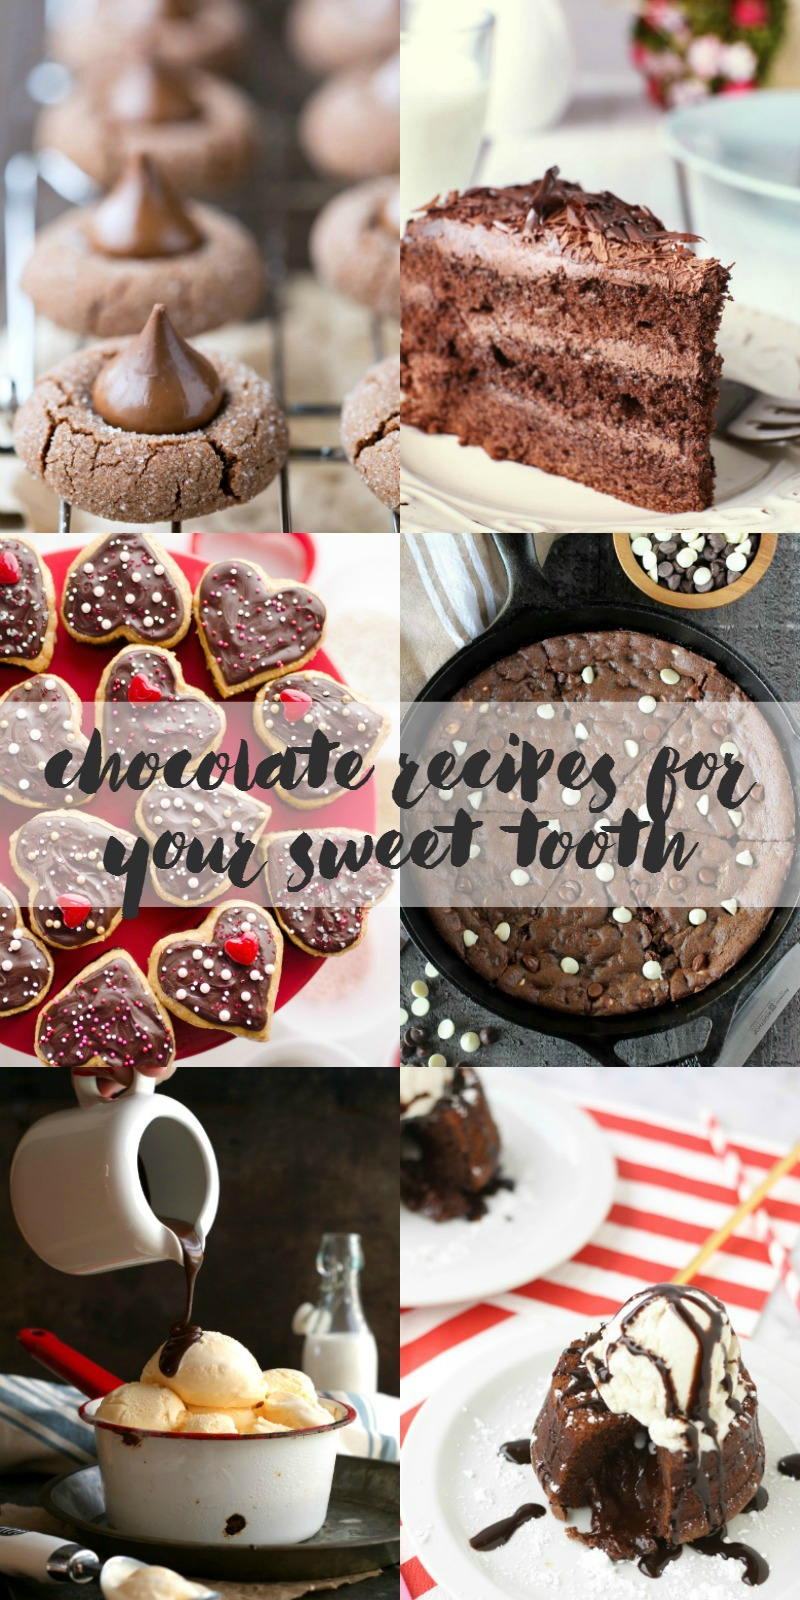 Craving something chocolatey? These chocolate recipes are sure to curb your craving. Chocolate recipes for your sweet tooth.